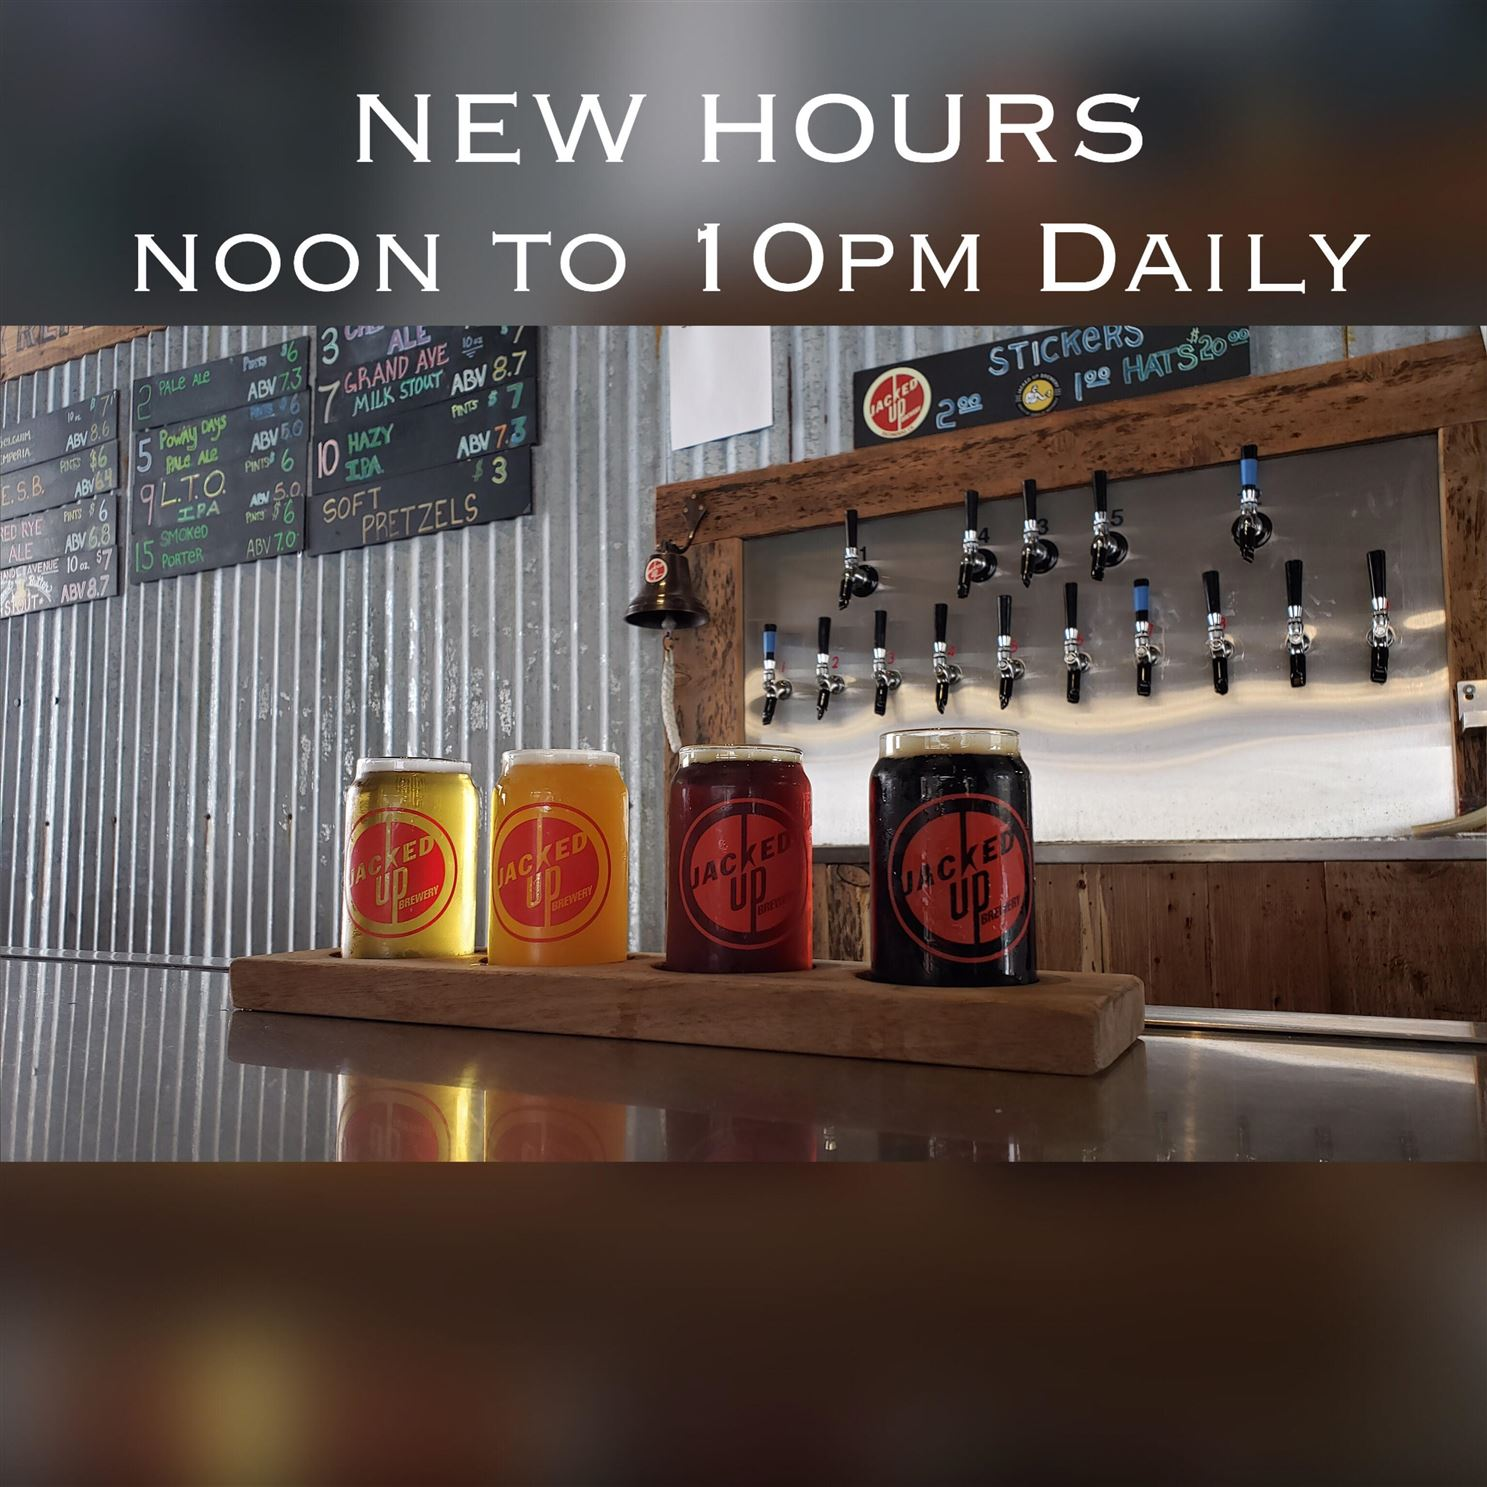 nw-hours-jacked-up-brewery_resized